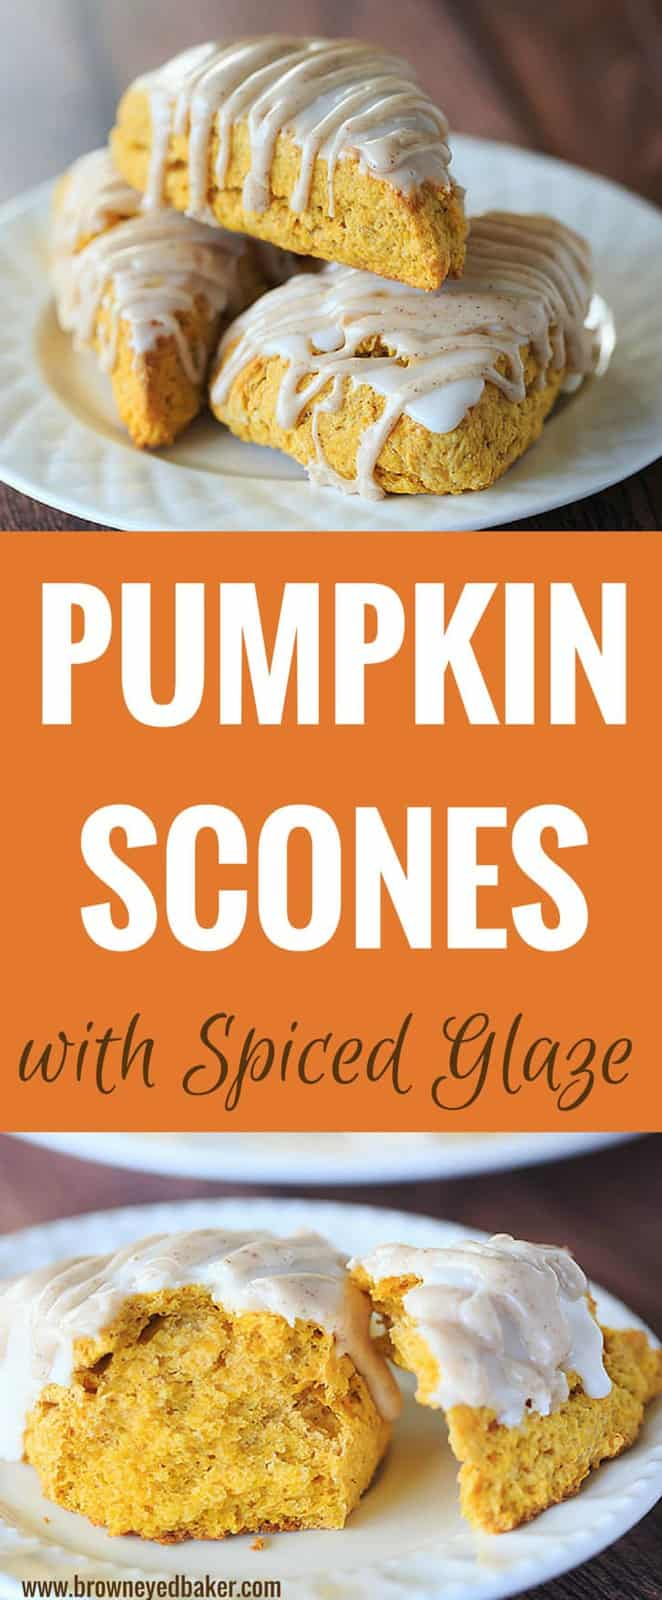 Pumpkin Scones with Spiced Glaze - A Starbucks copycat!